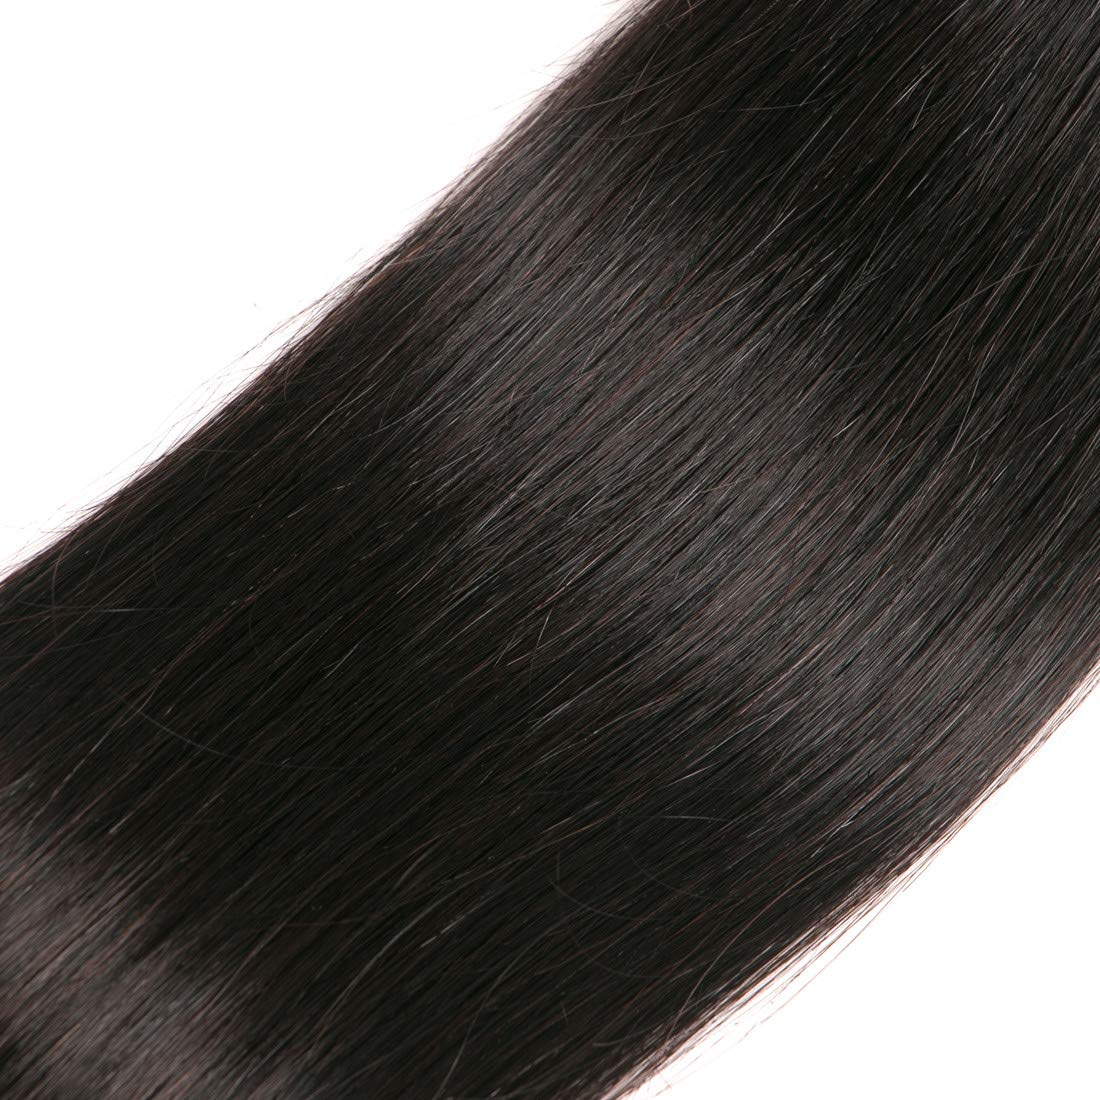 Brazilian Straight Hair With Closure 3 Bundles Unprocessed Virgin Human Hair Bundles With Lace Closure Free Part Hair Extensions Natural Color(12 14 16+10) by RUIMEISI (Image #8)